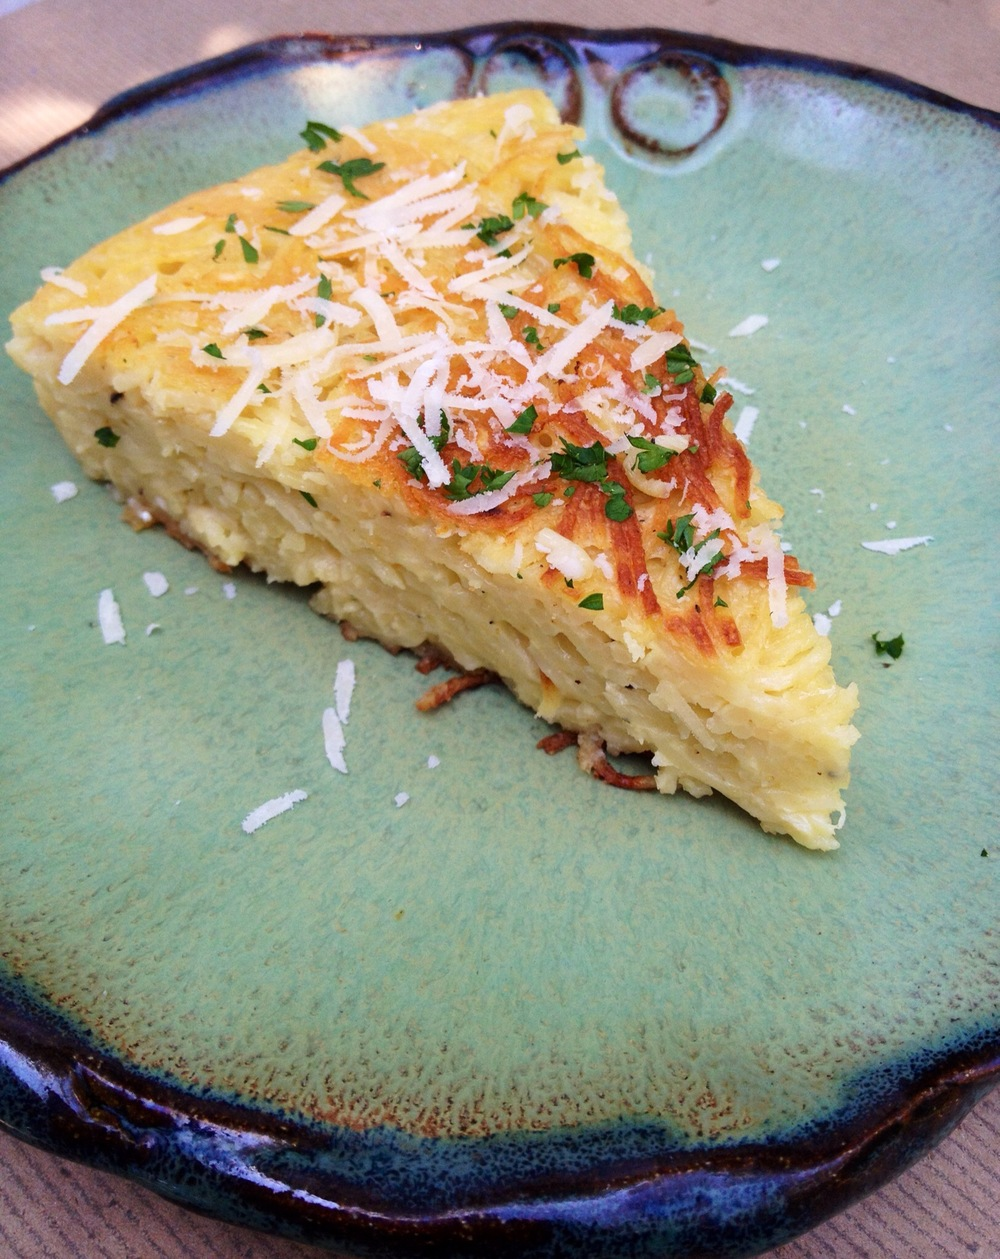 easy recipe using pasta to bake into a skillet cake